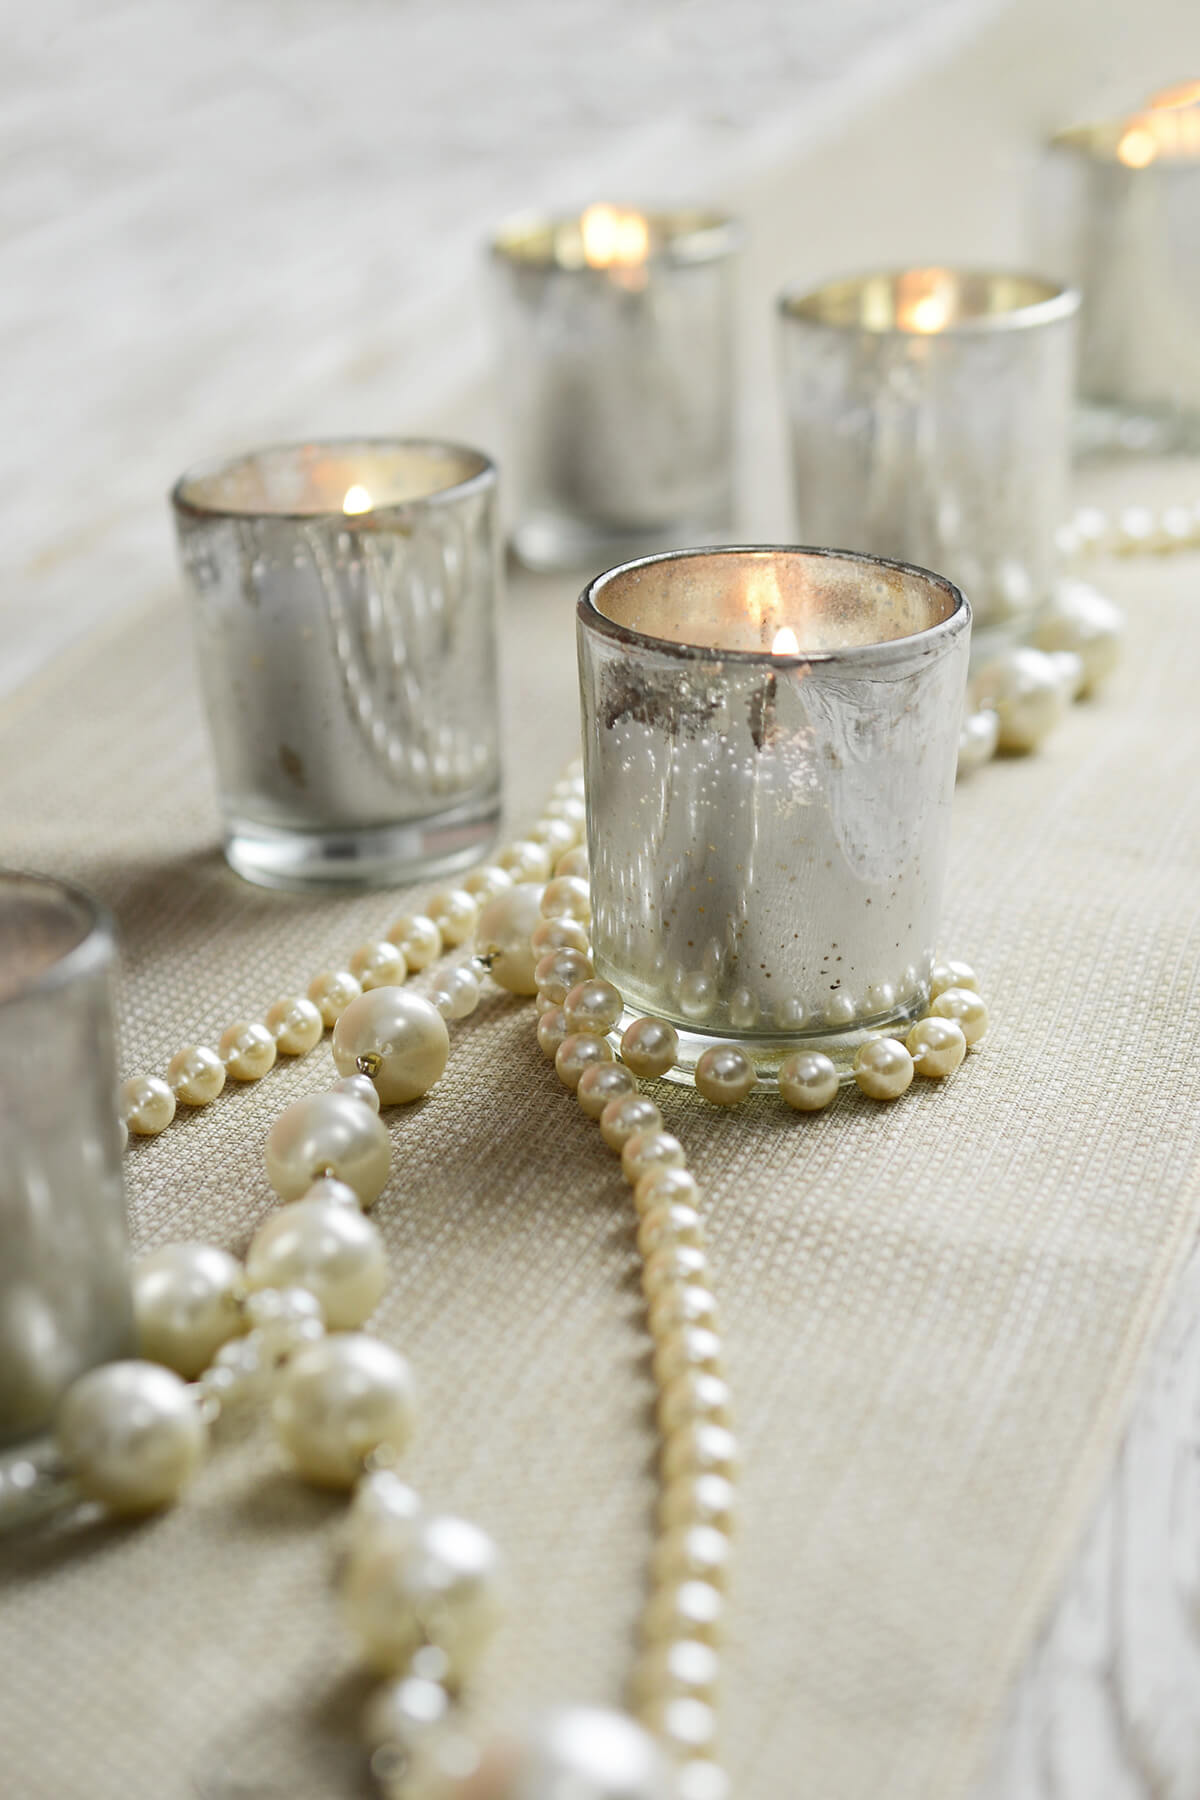 12 Pre-filled Candles in  Mercury Glass Votive Holders